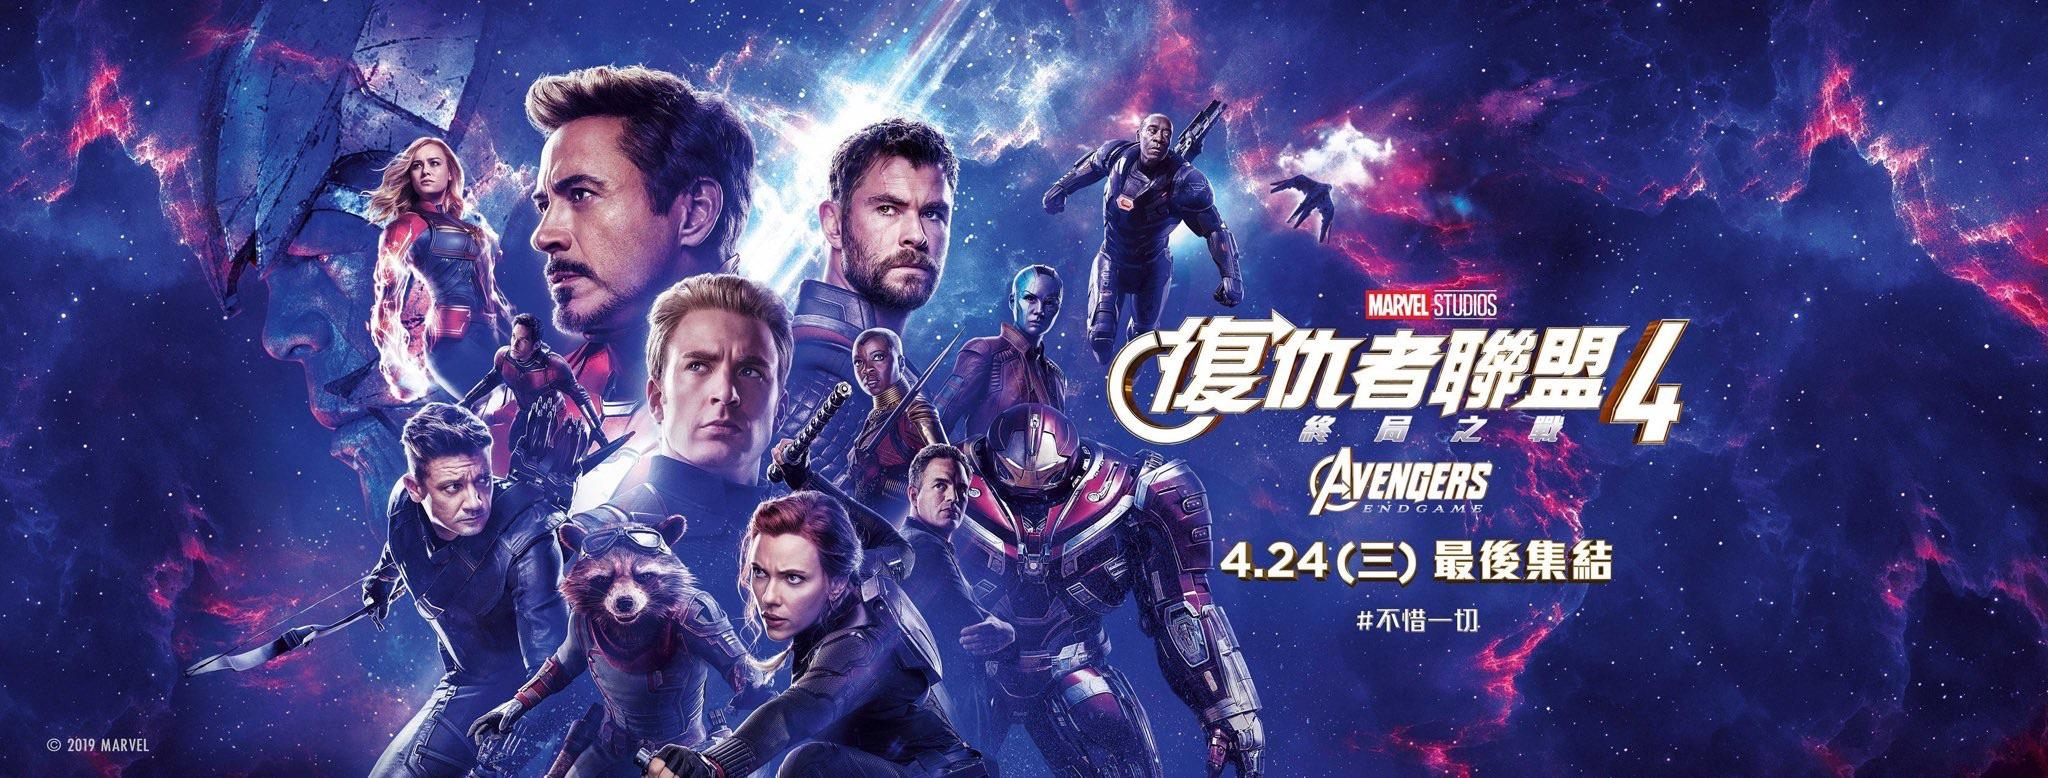 Avengers Endgame Chinese Art Reveals Hulkbuster Cosmic Book News